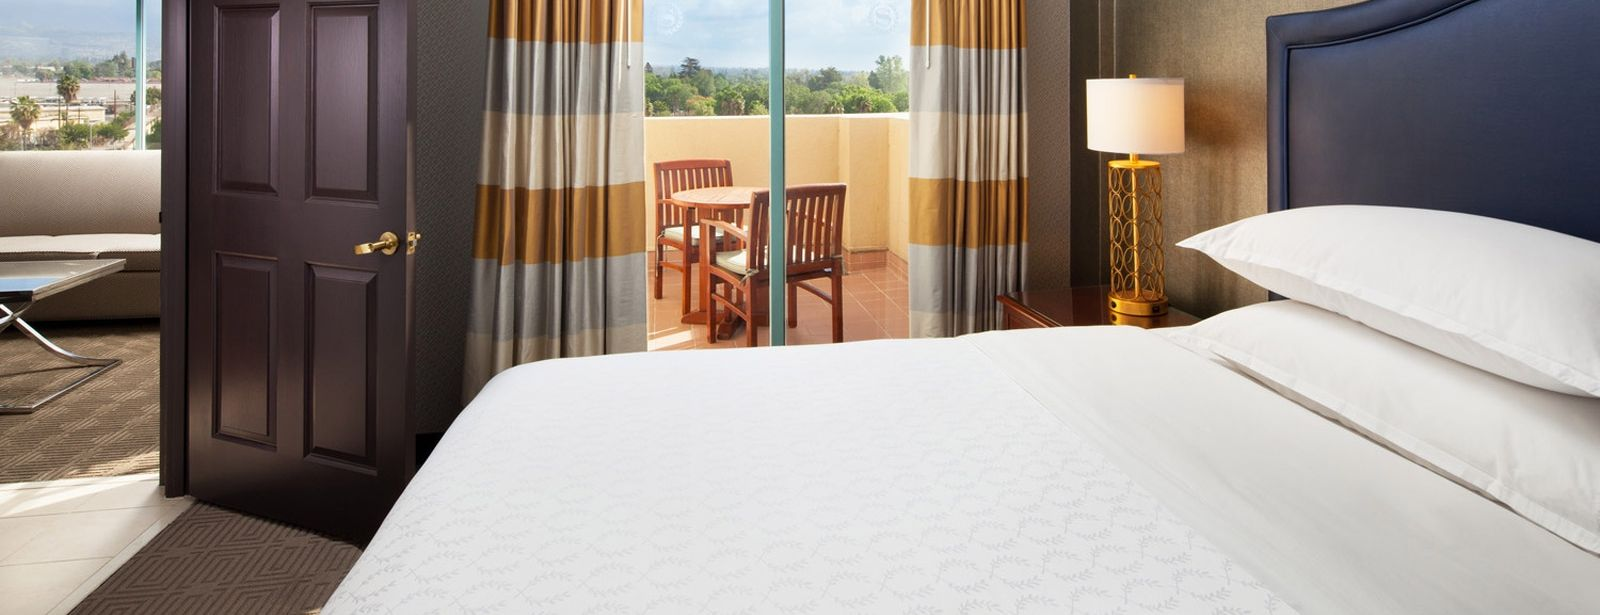 Corner Balcony Suites | Sheraton Fairplex Hotel & Conference Center